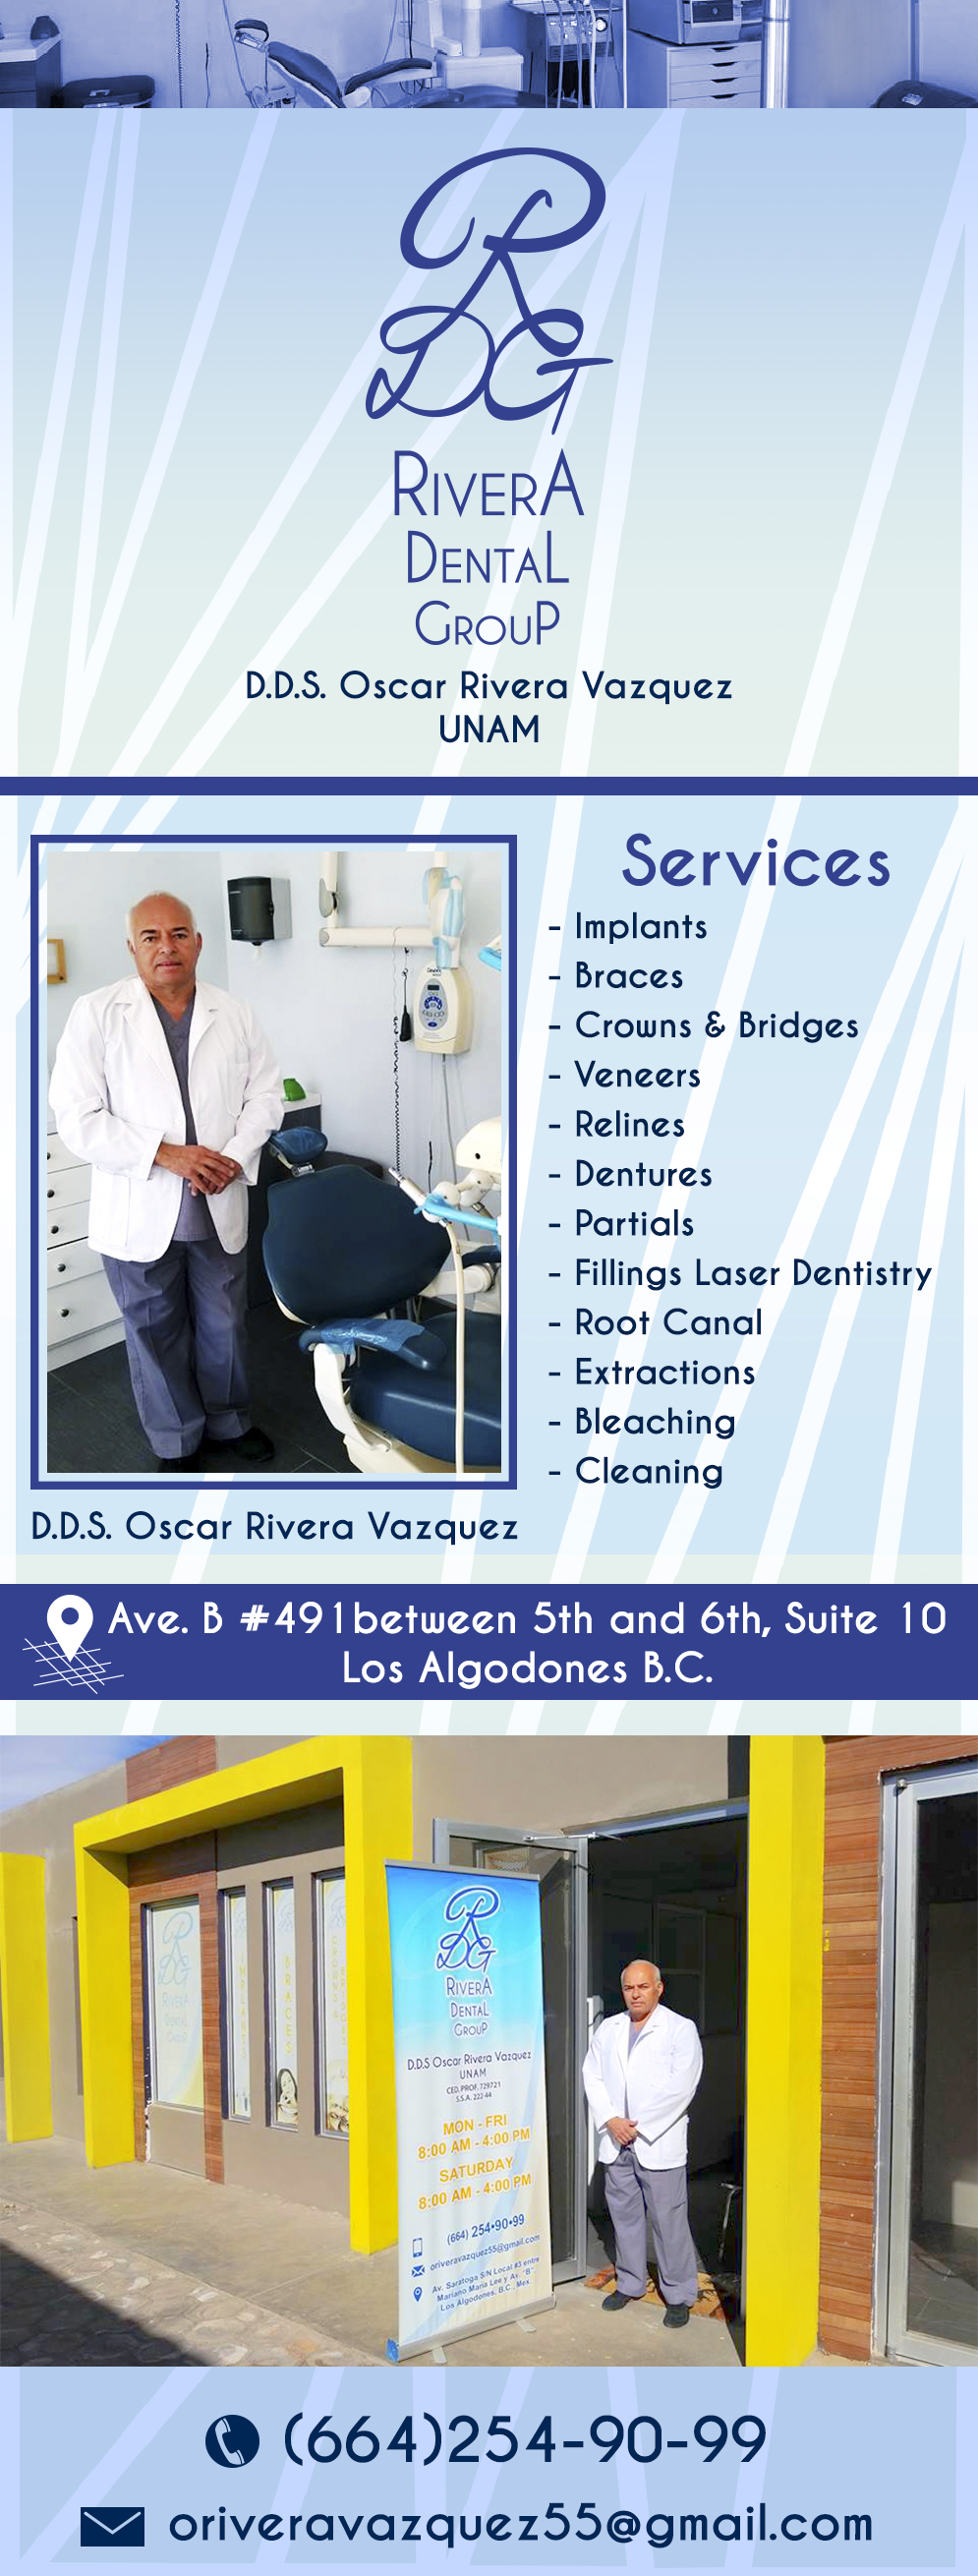 Rivera Dental Group - D.D.S. Oscar Rivera Vazquez in Algodones  in Algodones  Implants, Braces, Crowns & Bridges, Veneers, Relines, Dentures, Partials, Fillings Laser Dentistry, Root Canal, Extractions, Bleaching, Cleaning.     Implants Braces Crowns & Bridges Veneers Relines Dentures Partials Fillings Laser Dentistry Root Canal Extractions Bleaching Cleaning